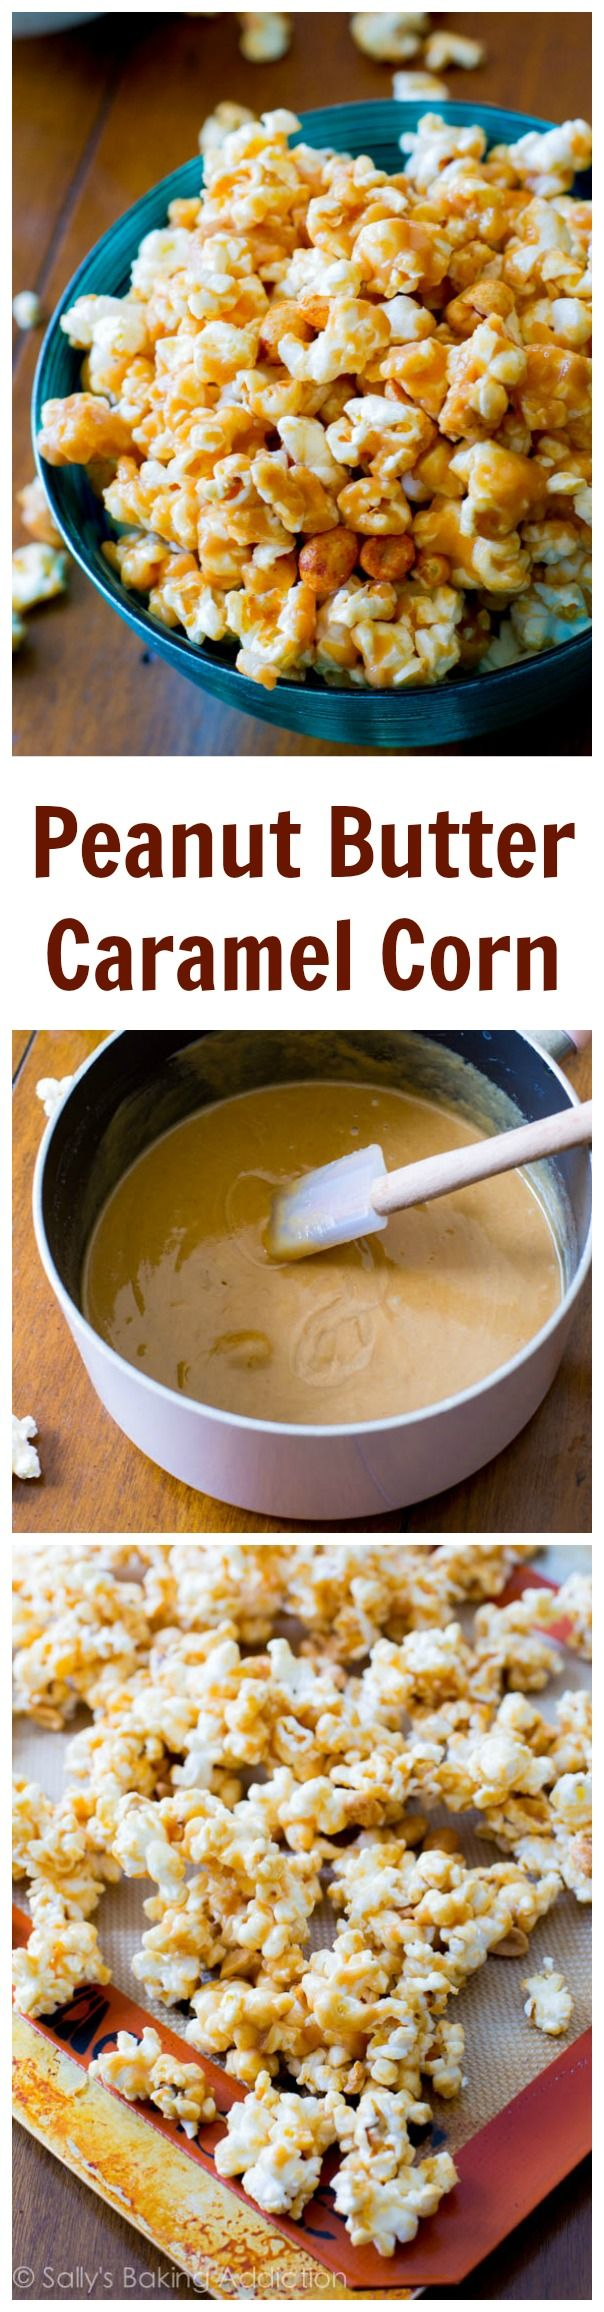 20 minute Peanut Butter Caramel Corn. You won't be able to put this stuff down!! @Sally McWilliam McWilliam [Sally's Baking Addiction]